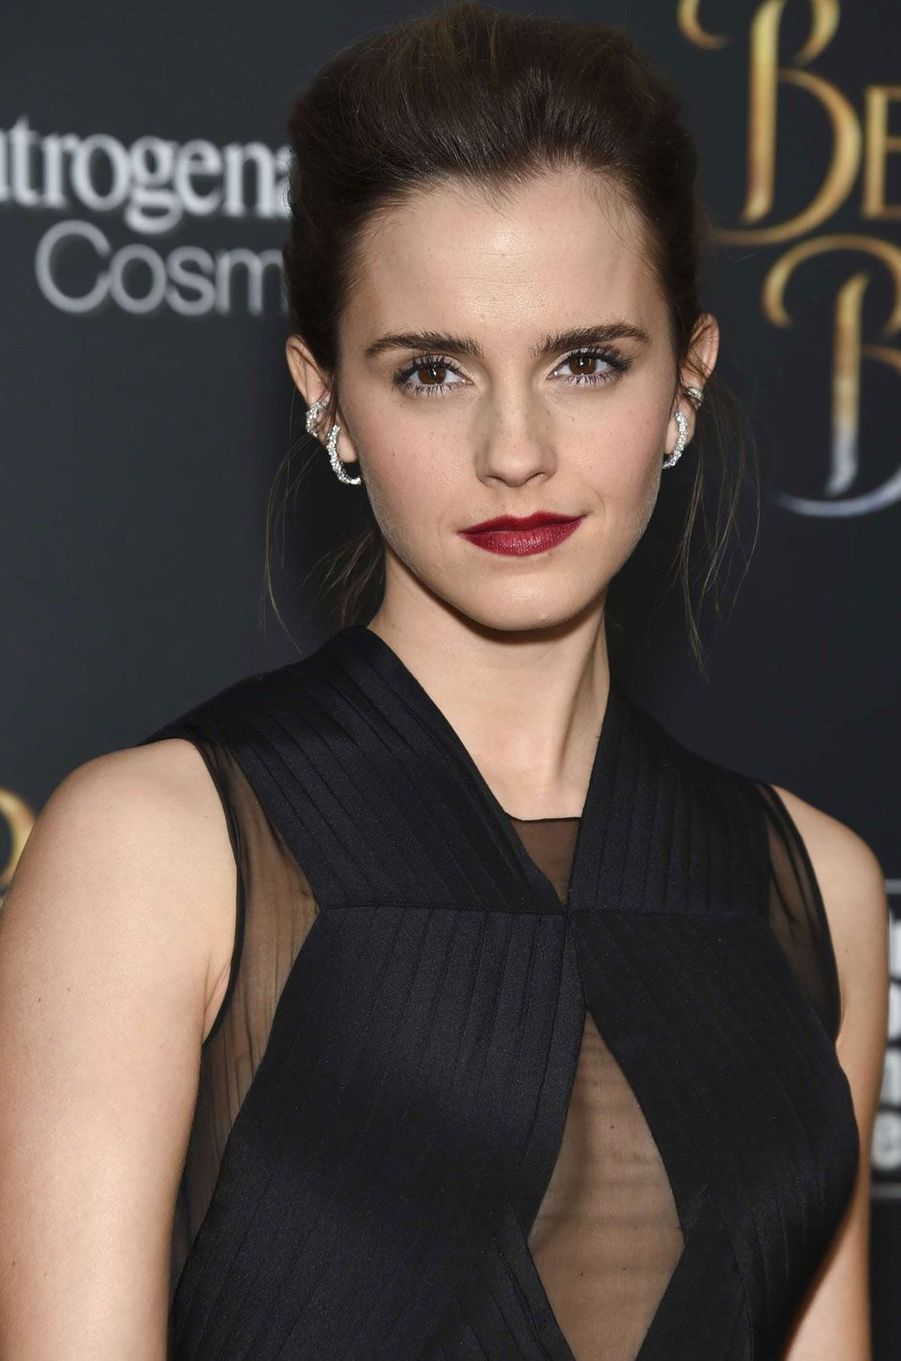 Emma Watson sublime en robe noire à New York.